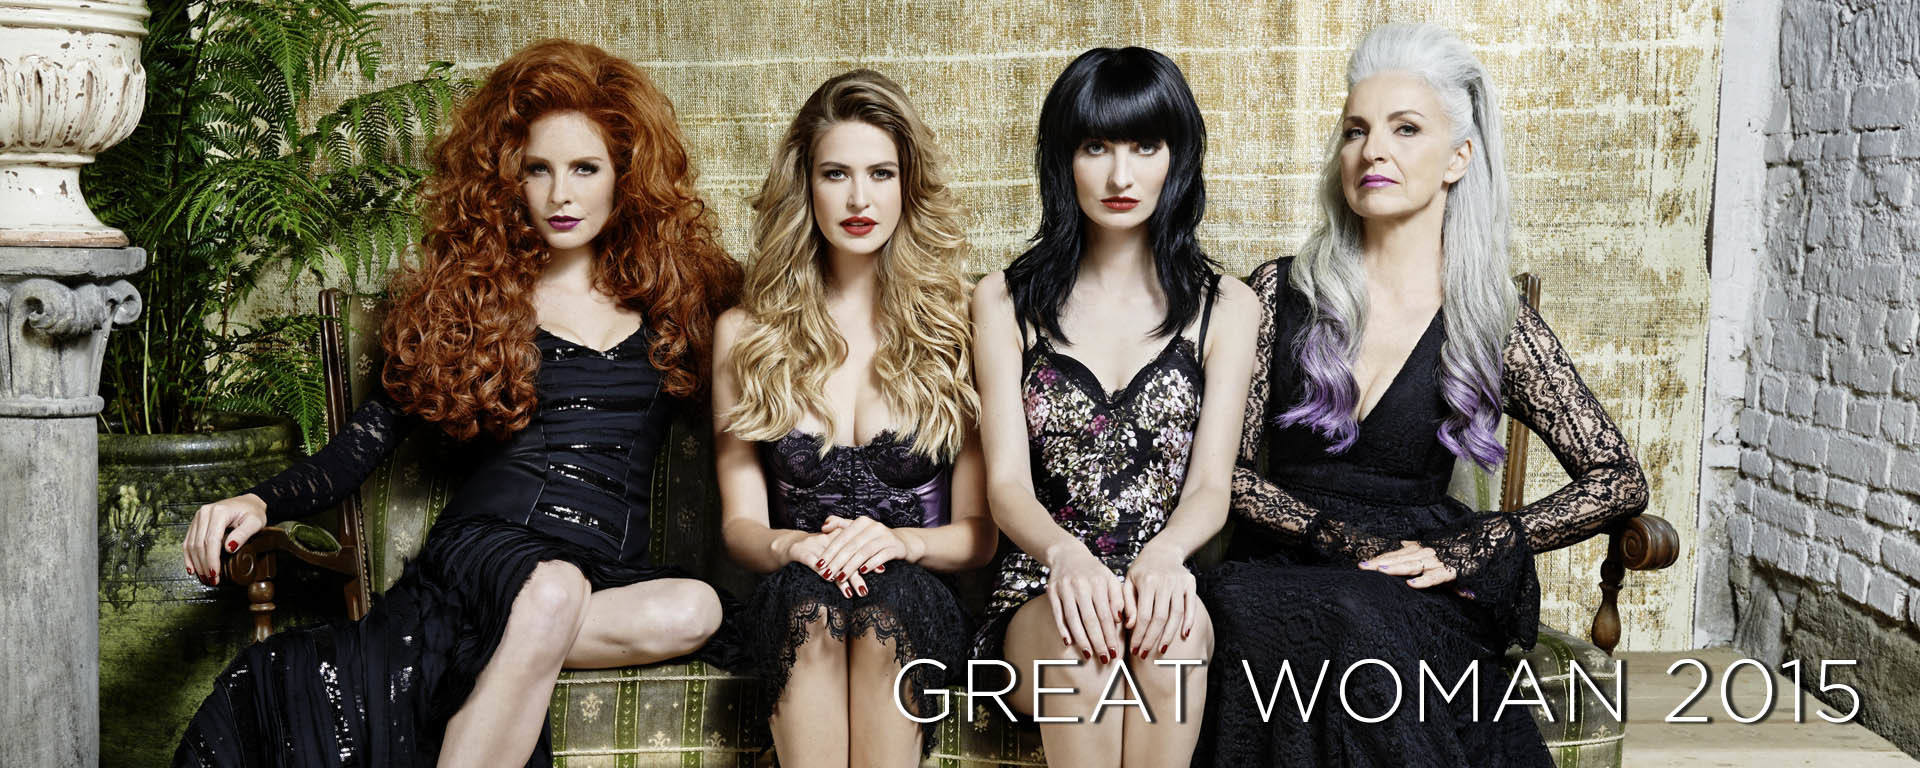 Great Woman 2015 . Frisuren . Trends . 2015 (© Great Lengths)